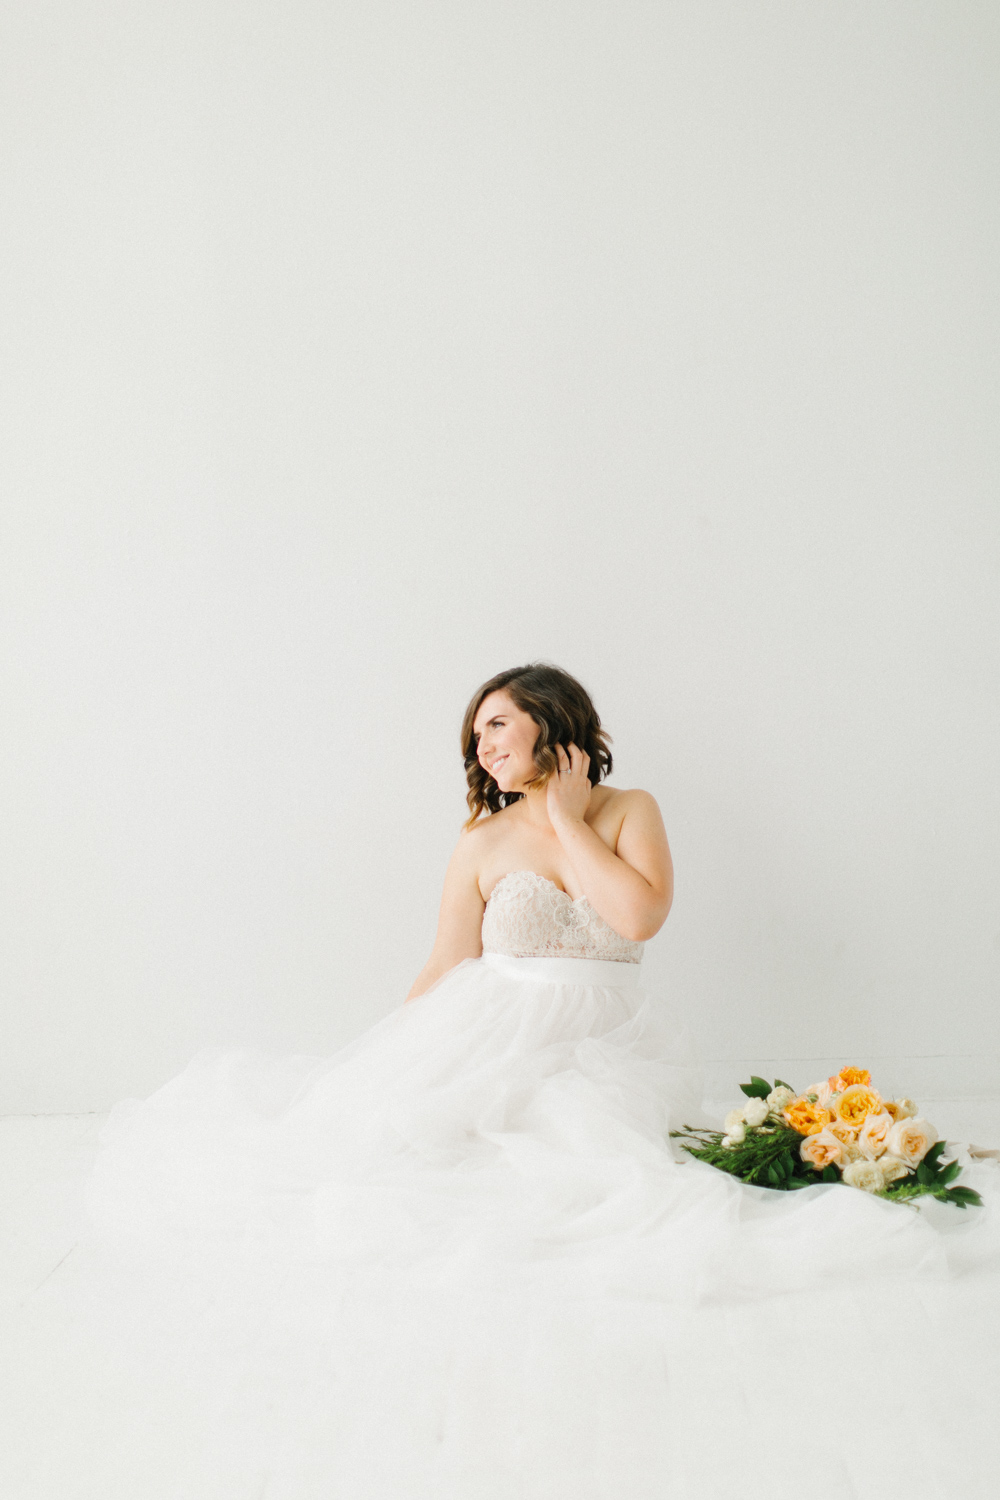 Seattle Fine Art Wedding Photographer | Seattle Downtown White Studio Bridal Session | Stunning Wedding Bouquet | Seattle Bride | Seattle Wedding | Photography Studio Space | Emma Rose Company Wedding Photography-30.jpg